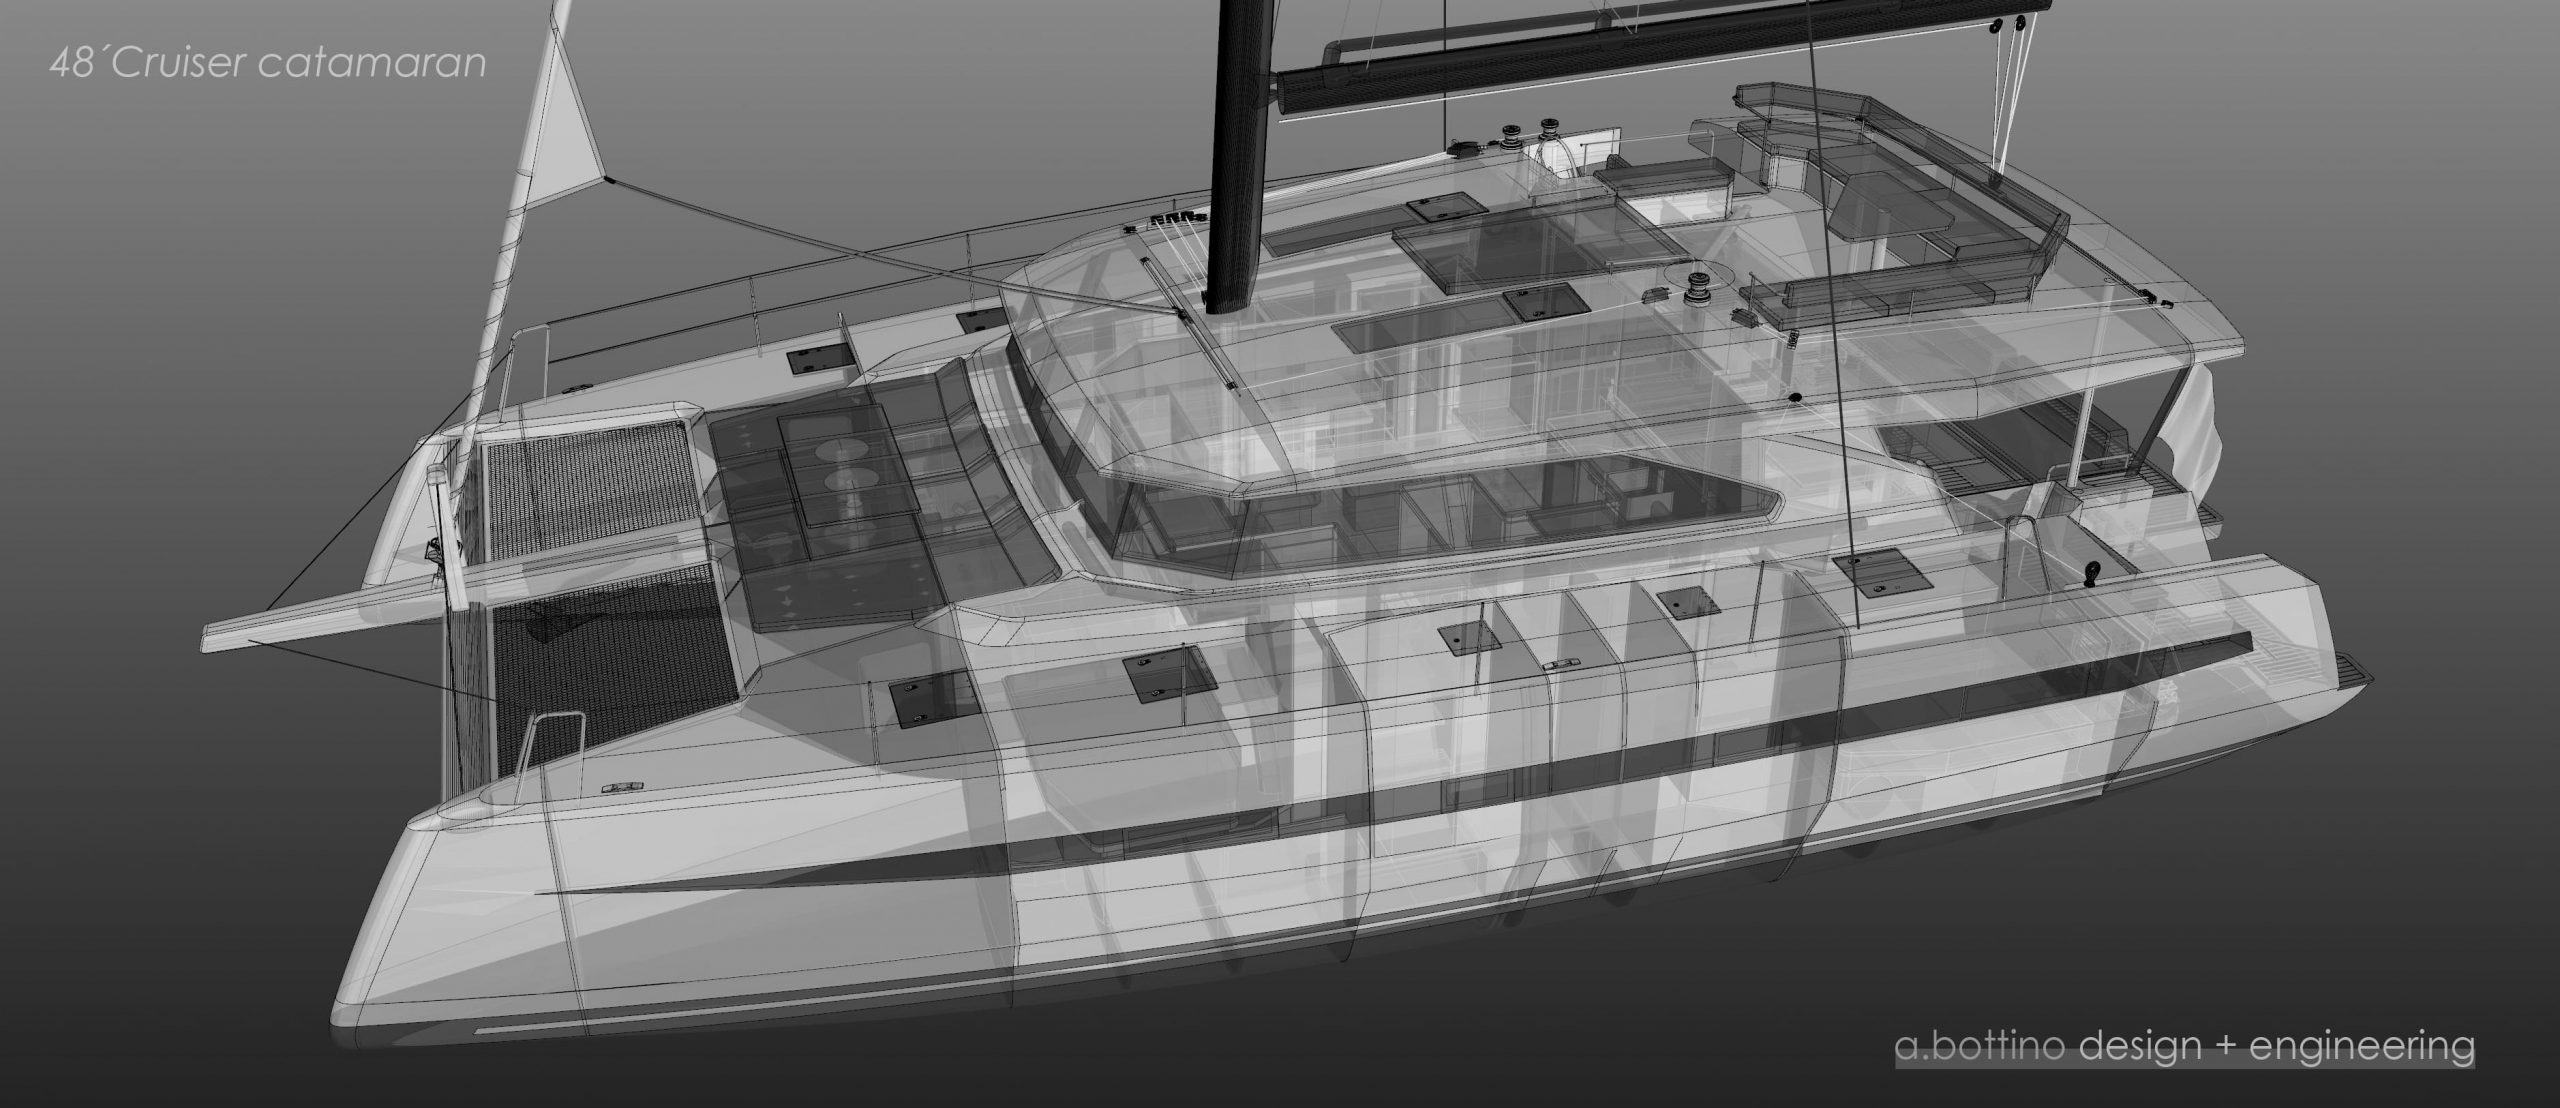 AG Cat sail 48 render - boat shopping